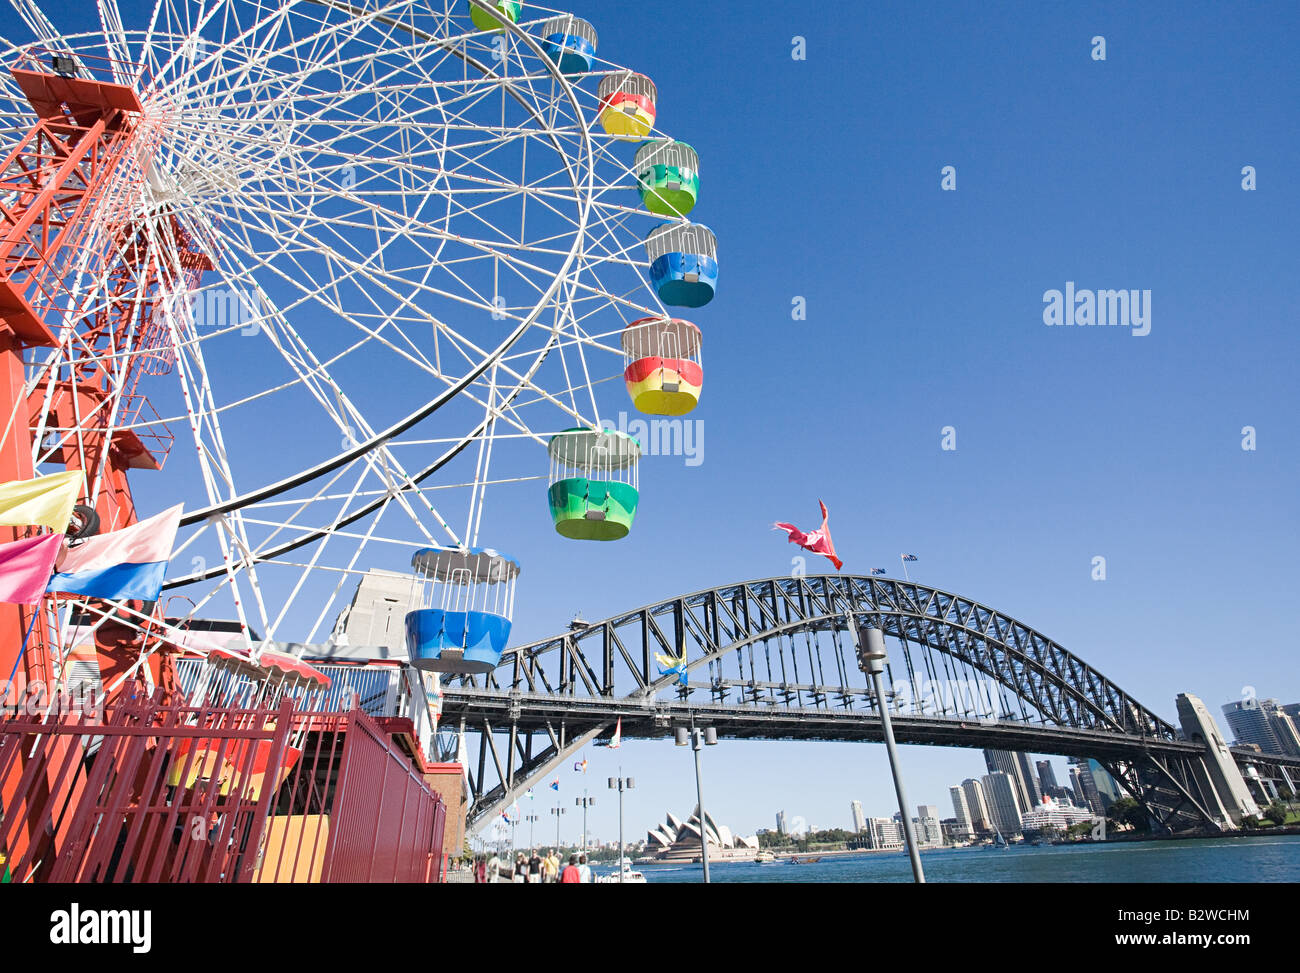 A ferris wheel and sydney harbour bridge - Stock Image